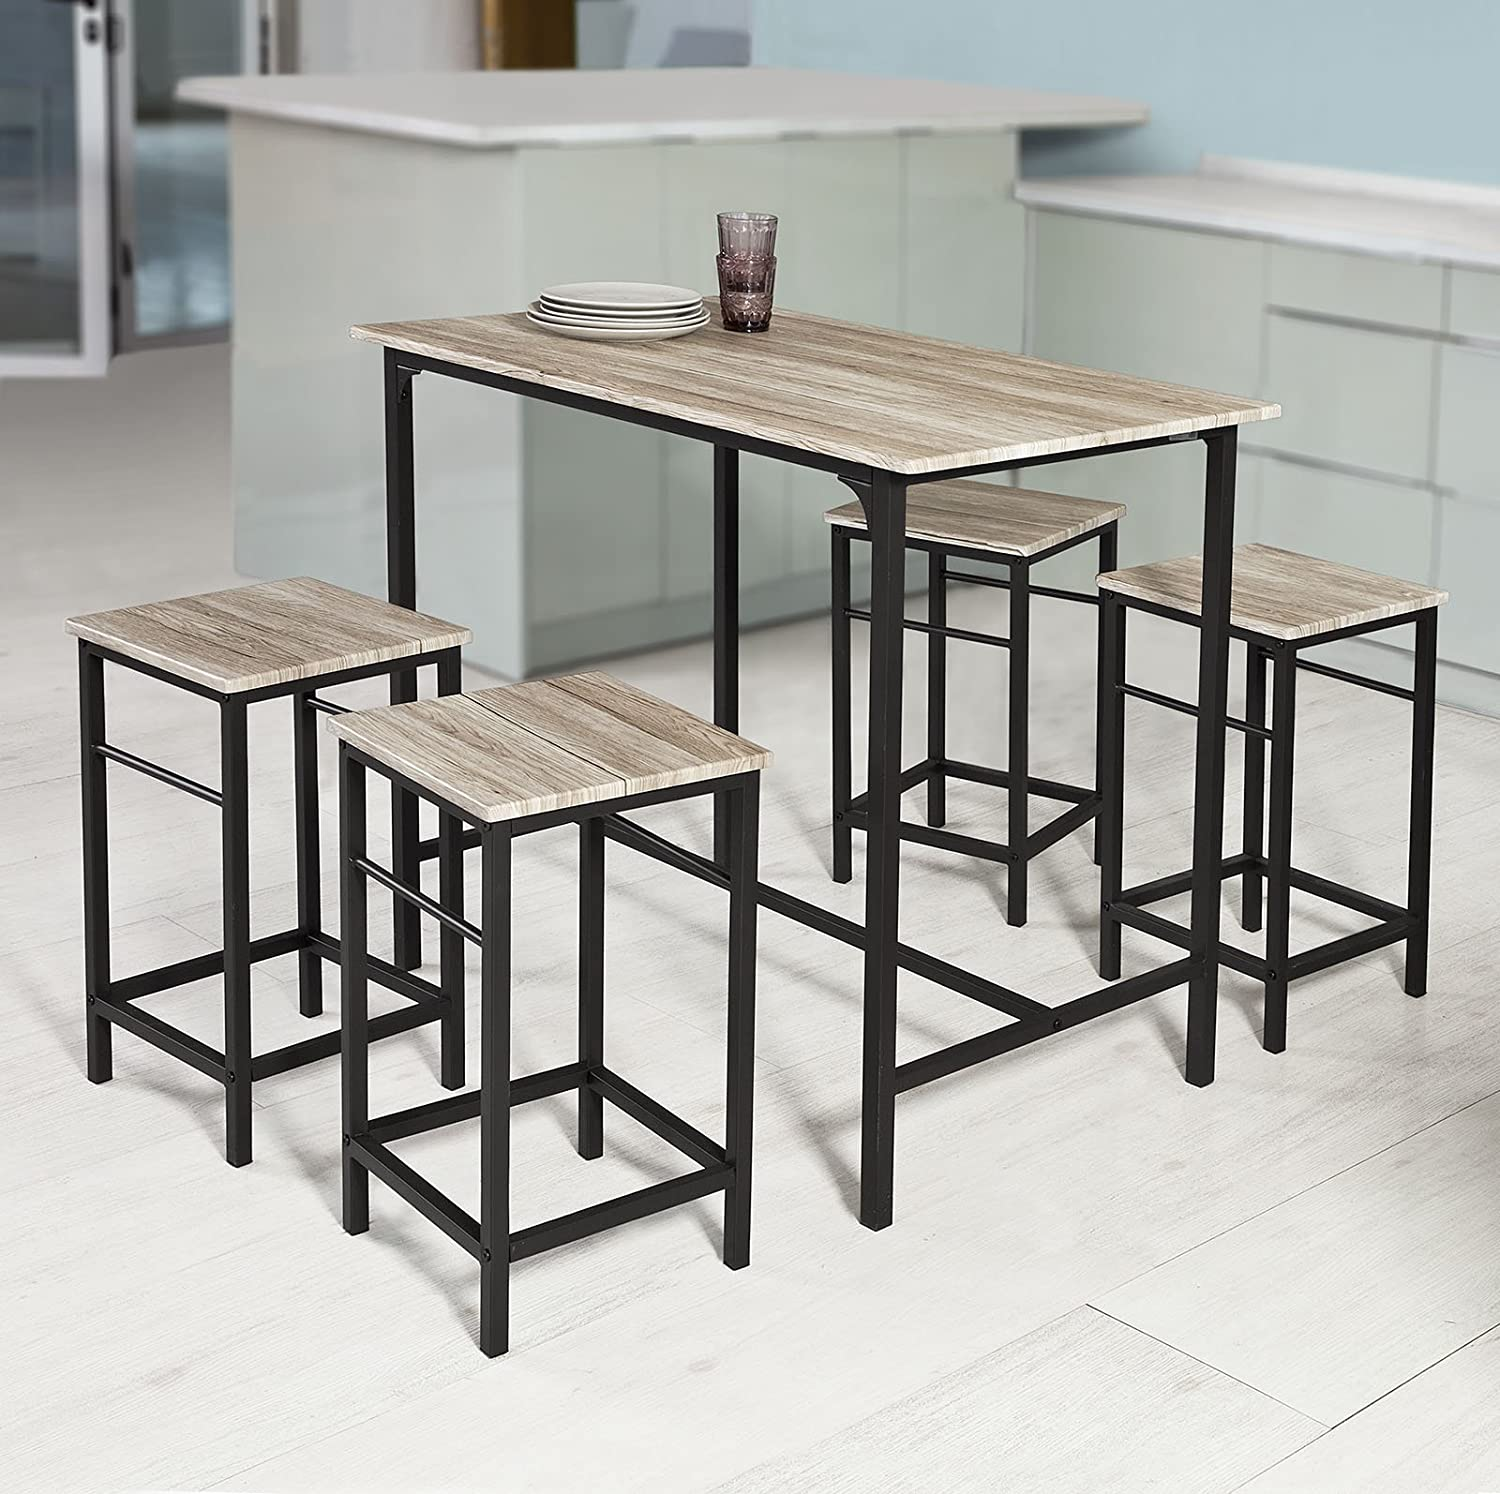 Breakfast bar stool dining table pub kitchen furniture high chair modern pub tall